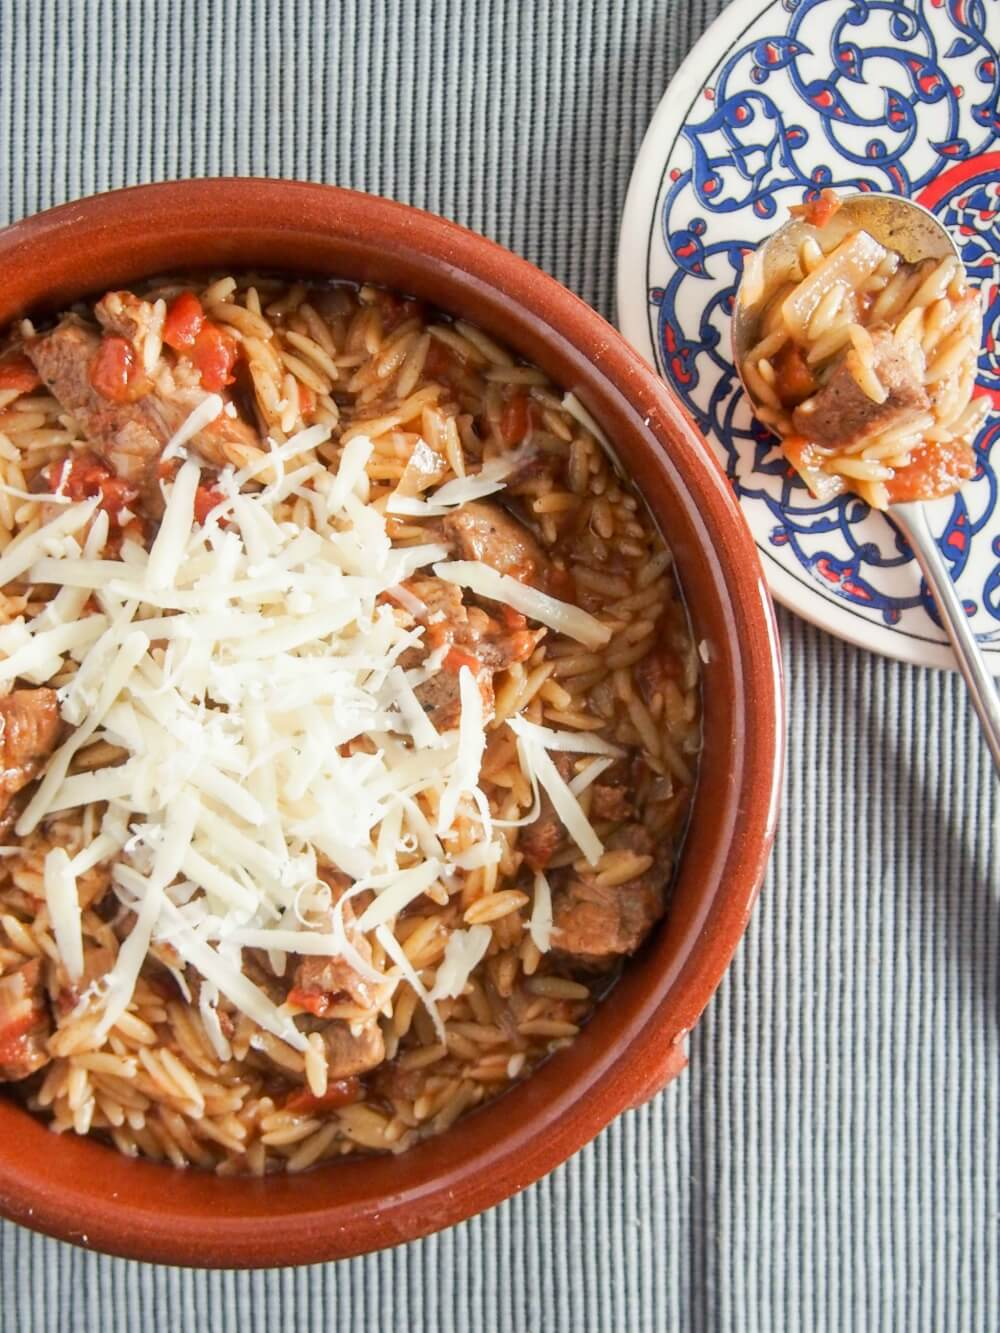 Youvetsi greek beef or lamb and orzo stew carolines cooking youvetsi is a delicious greek stew made with beef or lamb and orzo cooked in a forumfinder Gallery